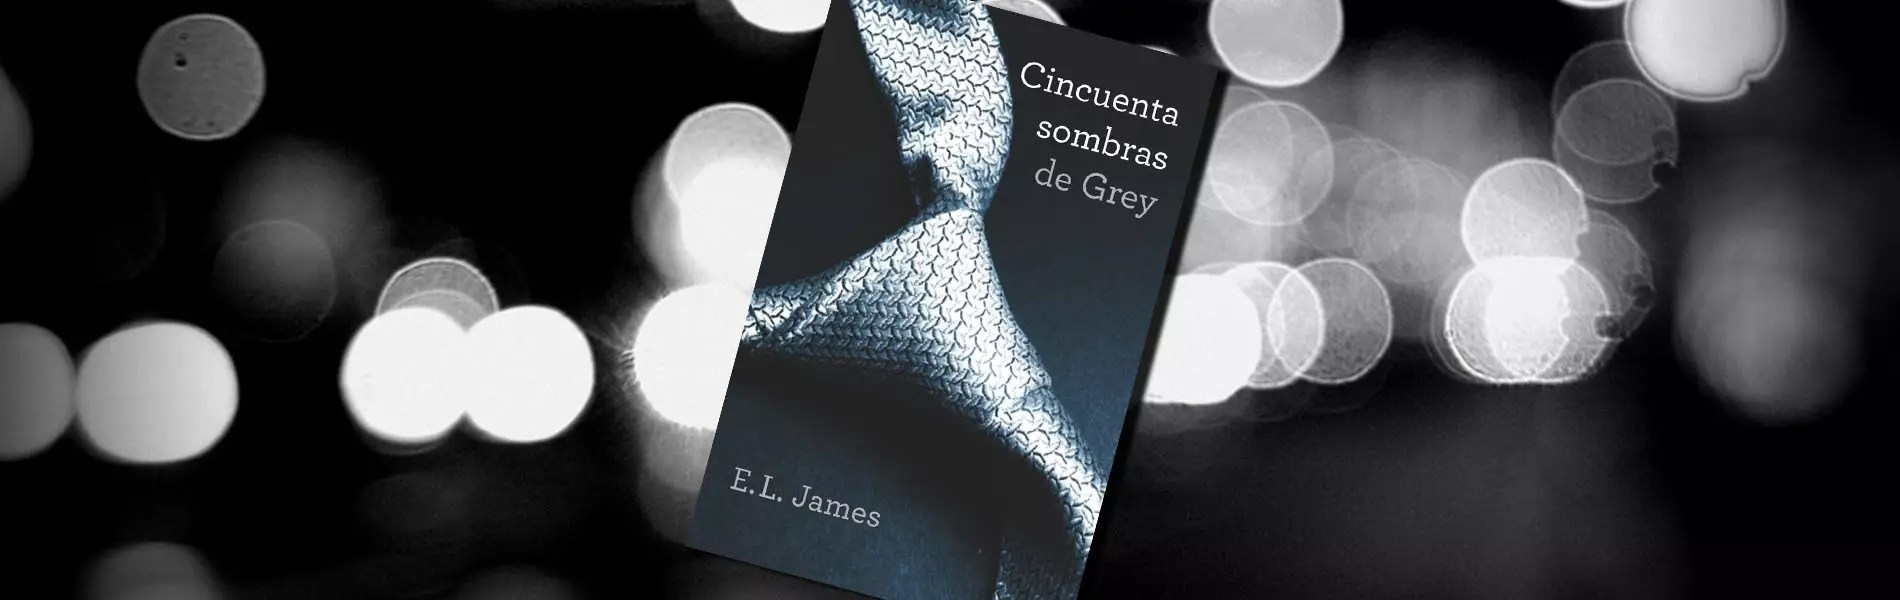 Libros E L James Cincuenta Sombras De Grey Libro E L James Reseña